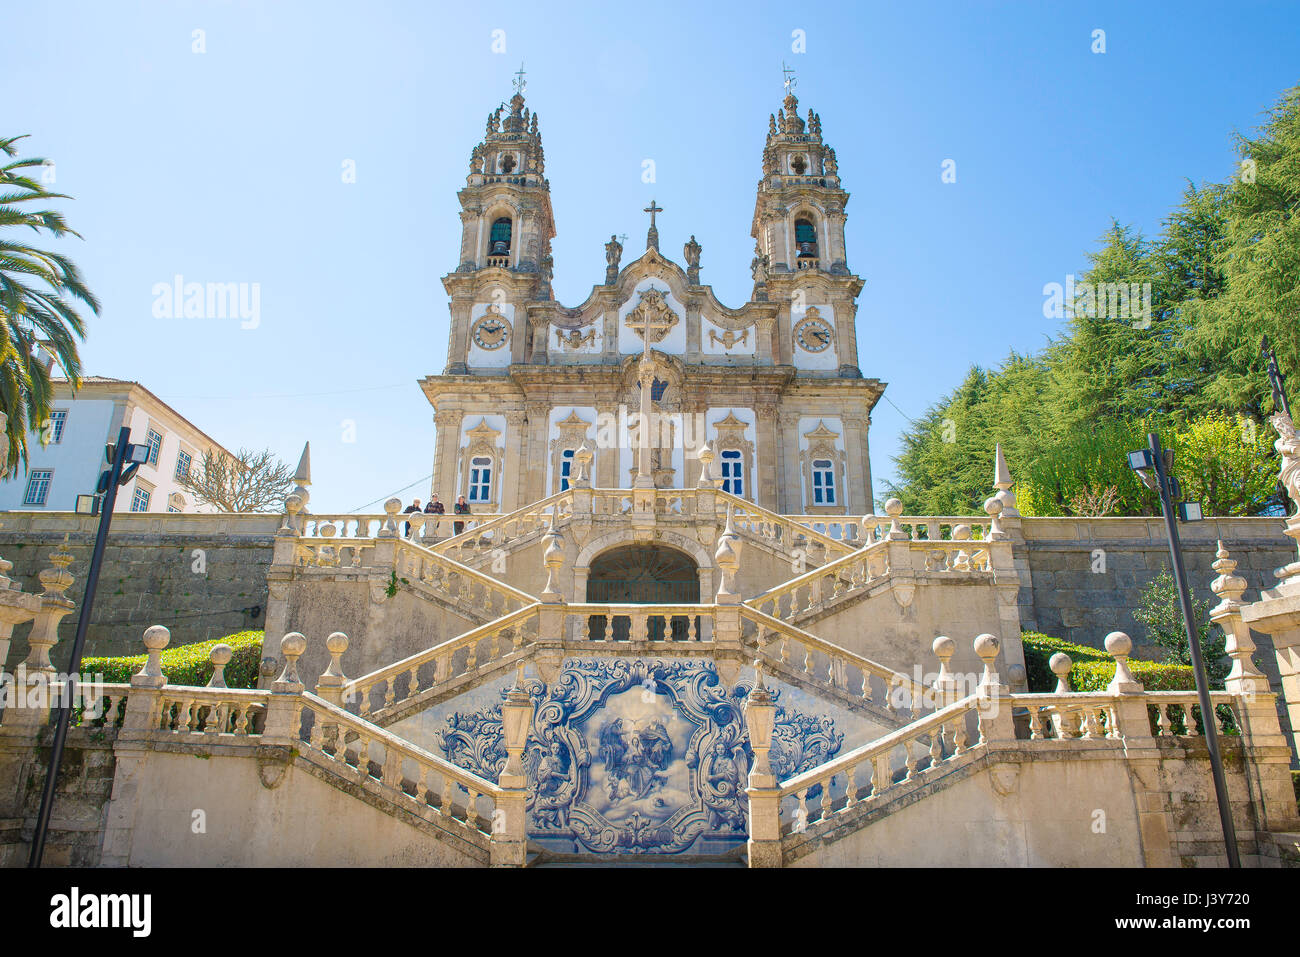 Lamego Portugal, the church of Santuario de Nossa Senhora dos Remedios at the summit of the 686 step Baroque staircase - Stock Image